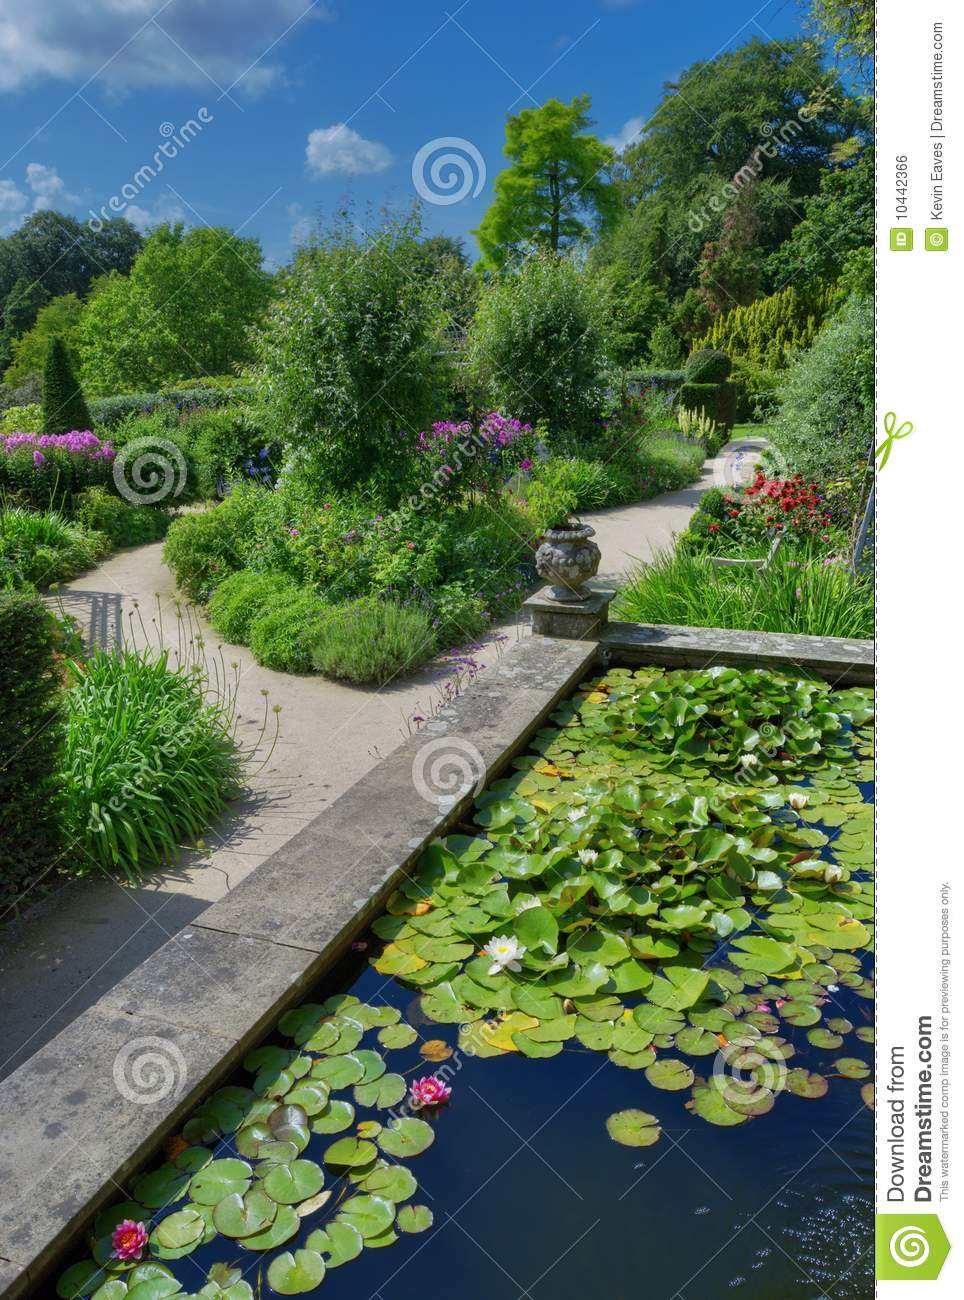 Landscaped garden and pond royalty free stock image for Garden pond unlimited